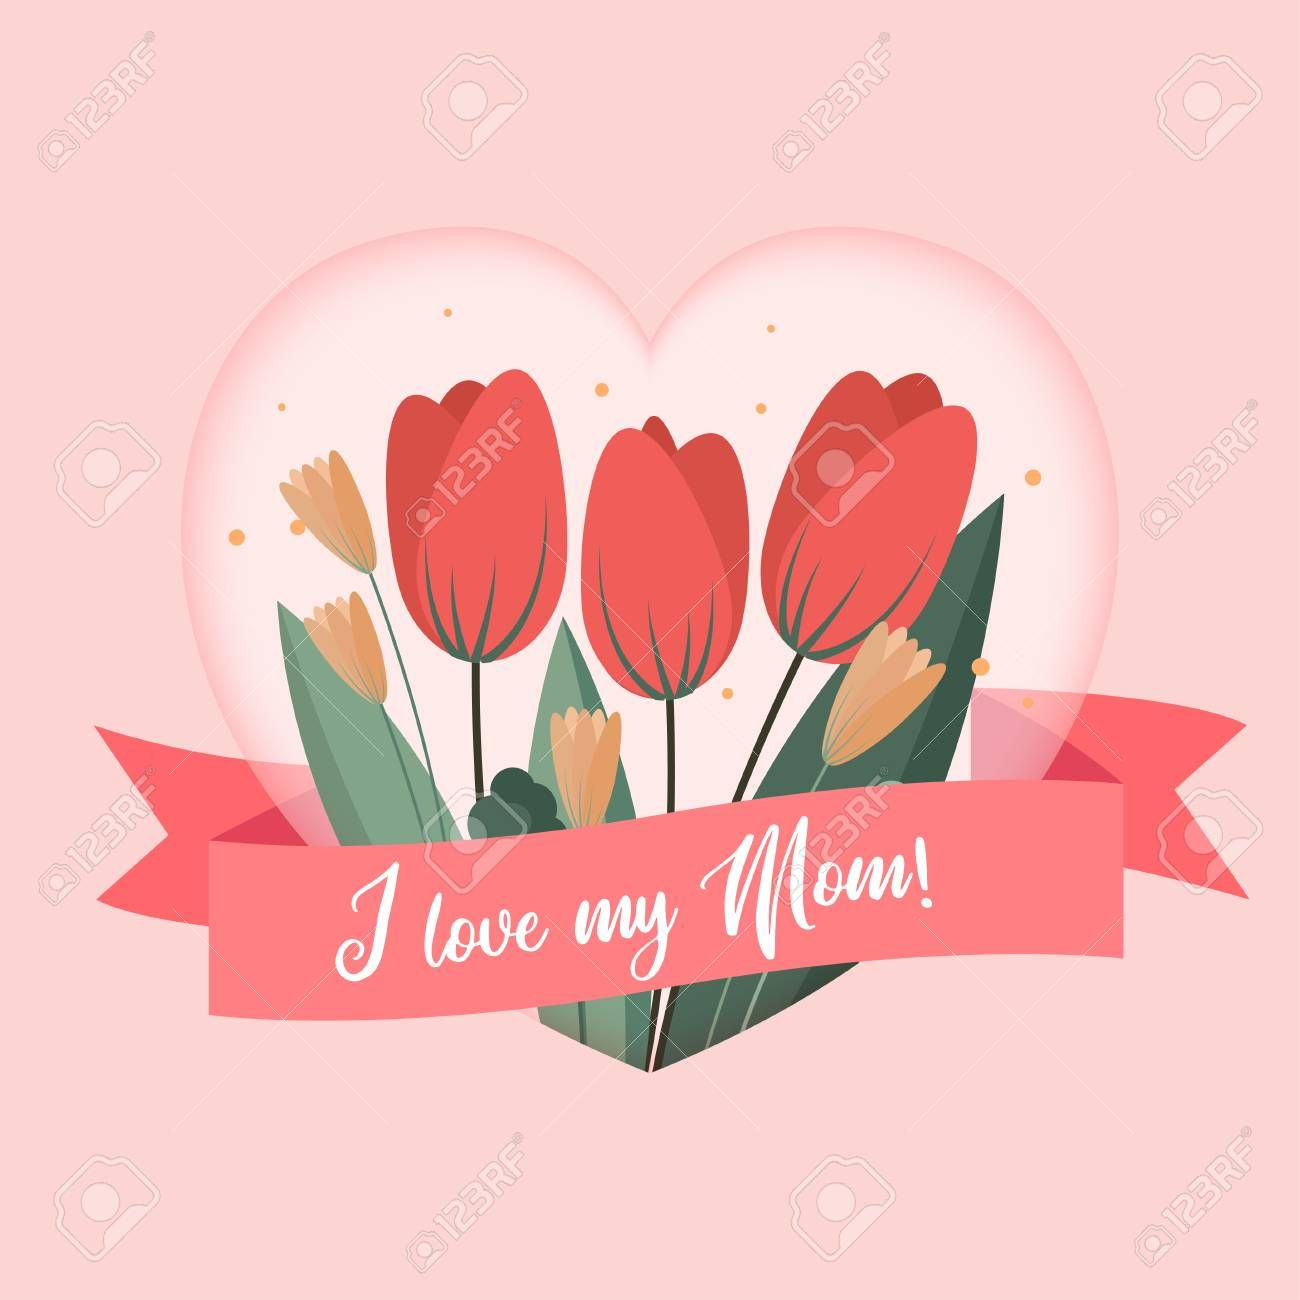 The Exciting I Love My Mom Greetings Card Template Background Design To Mothers With Birthday Cards For Mom Birthday Card Template Mothers Day Card Template